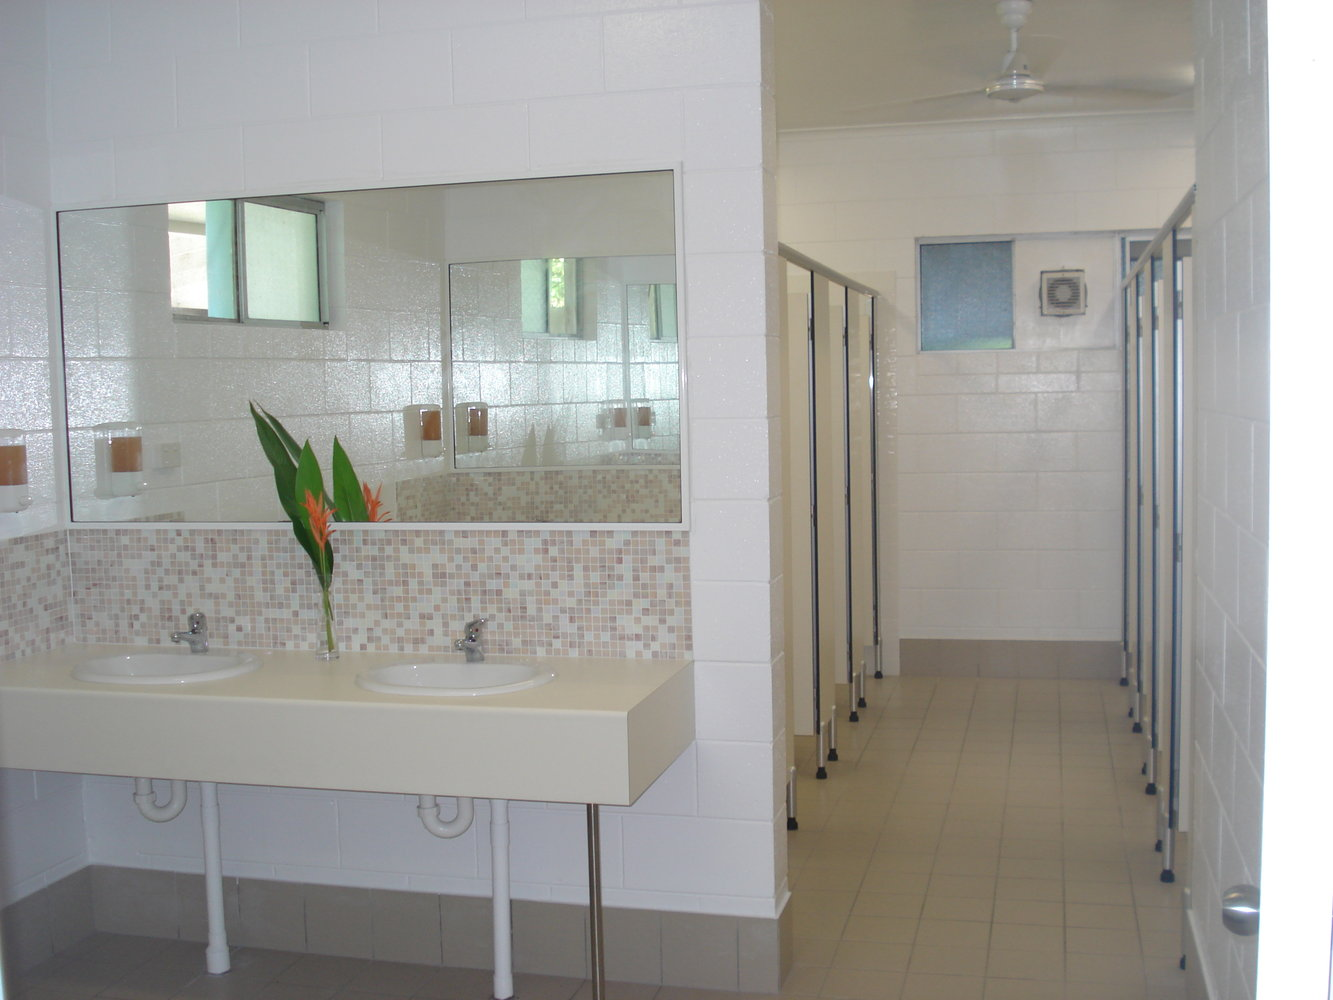 The cleanest bathrooms in Australia